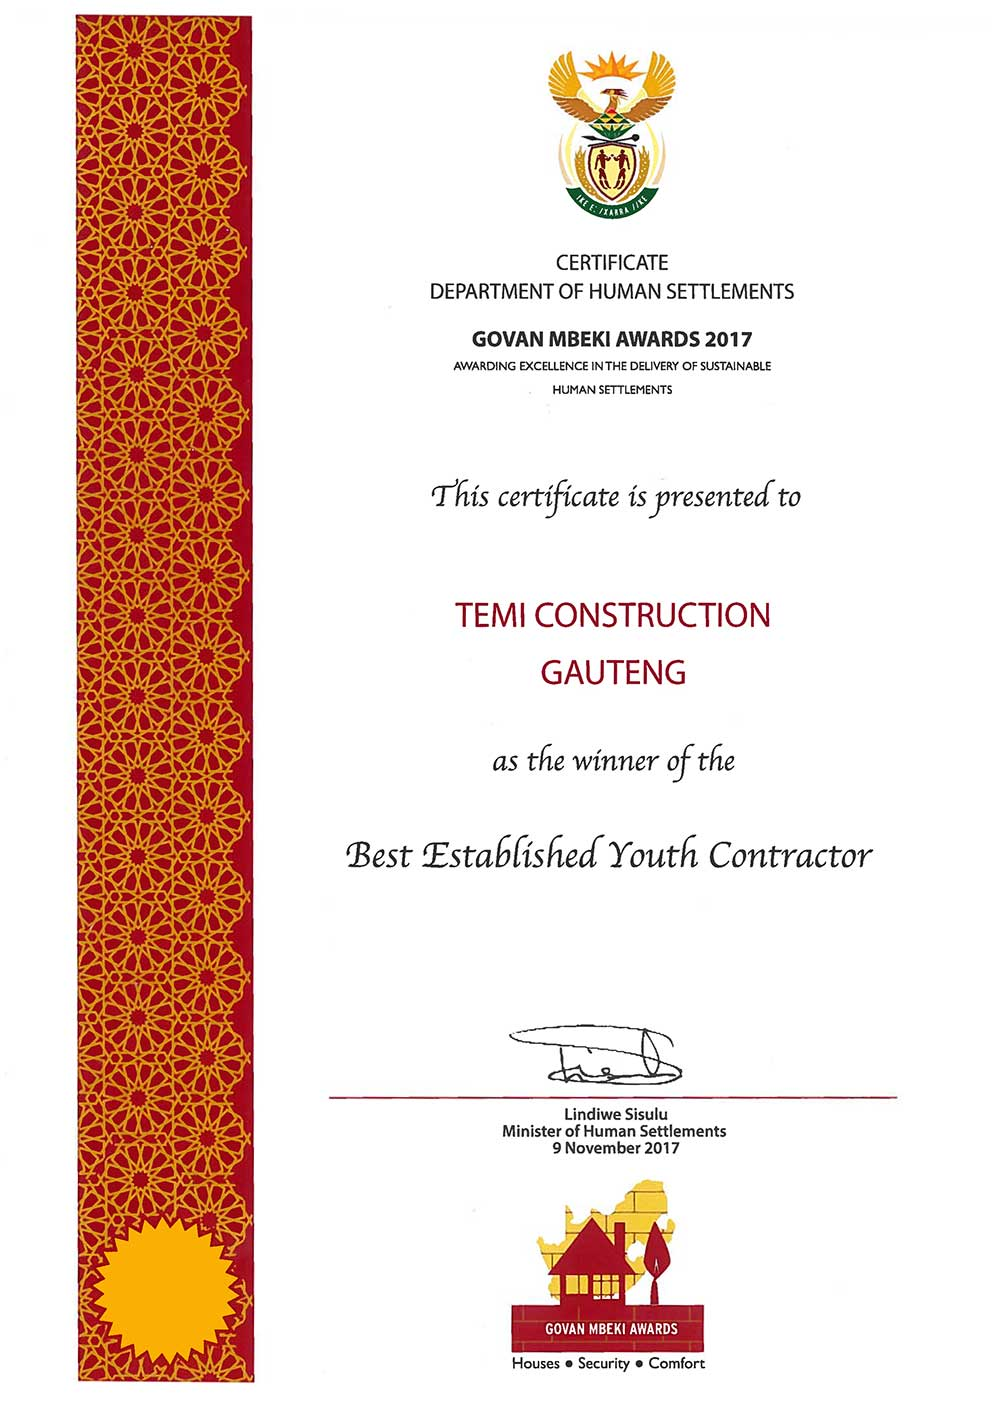 best established youth contractor 2017 temi00 - Home